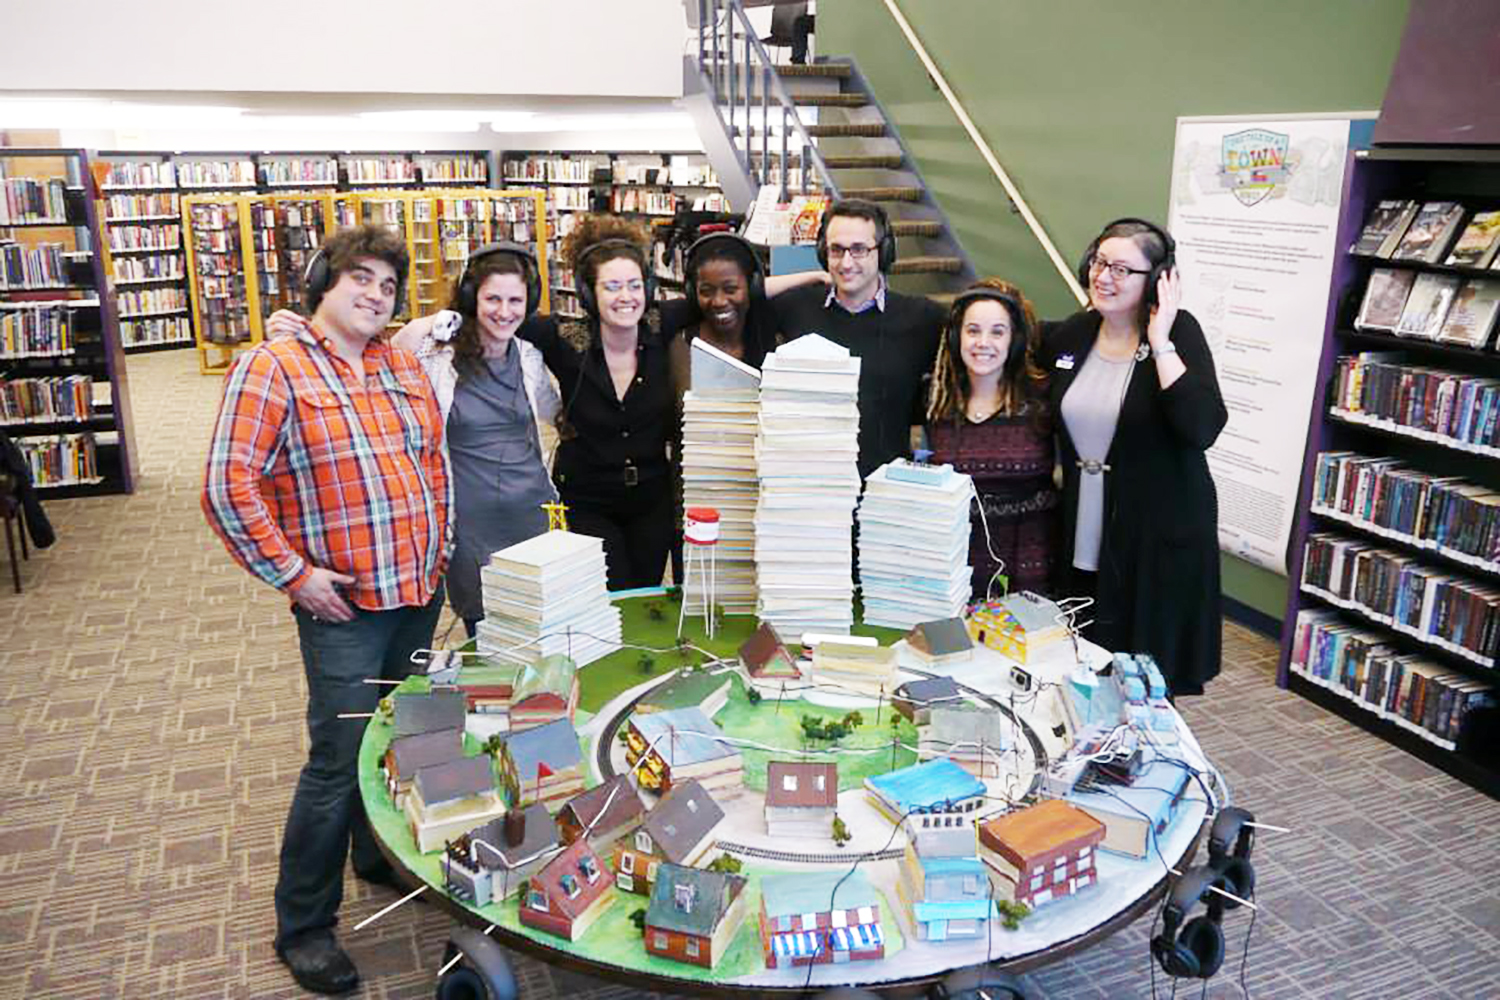 The Tale of a Town Toronto Mimico Storygathering Team at Mimico Centennial Library